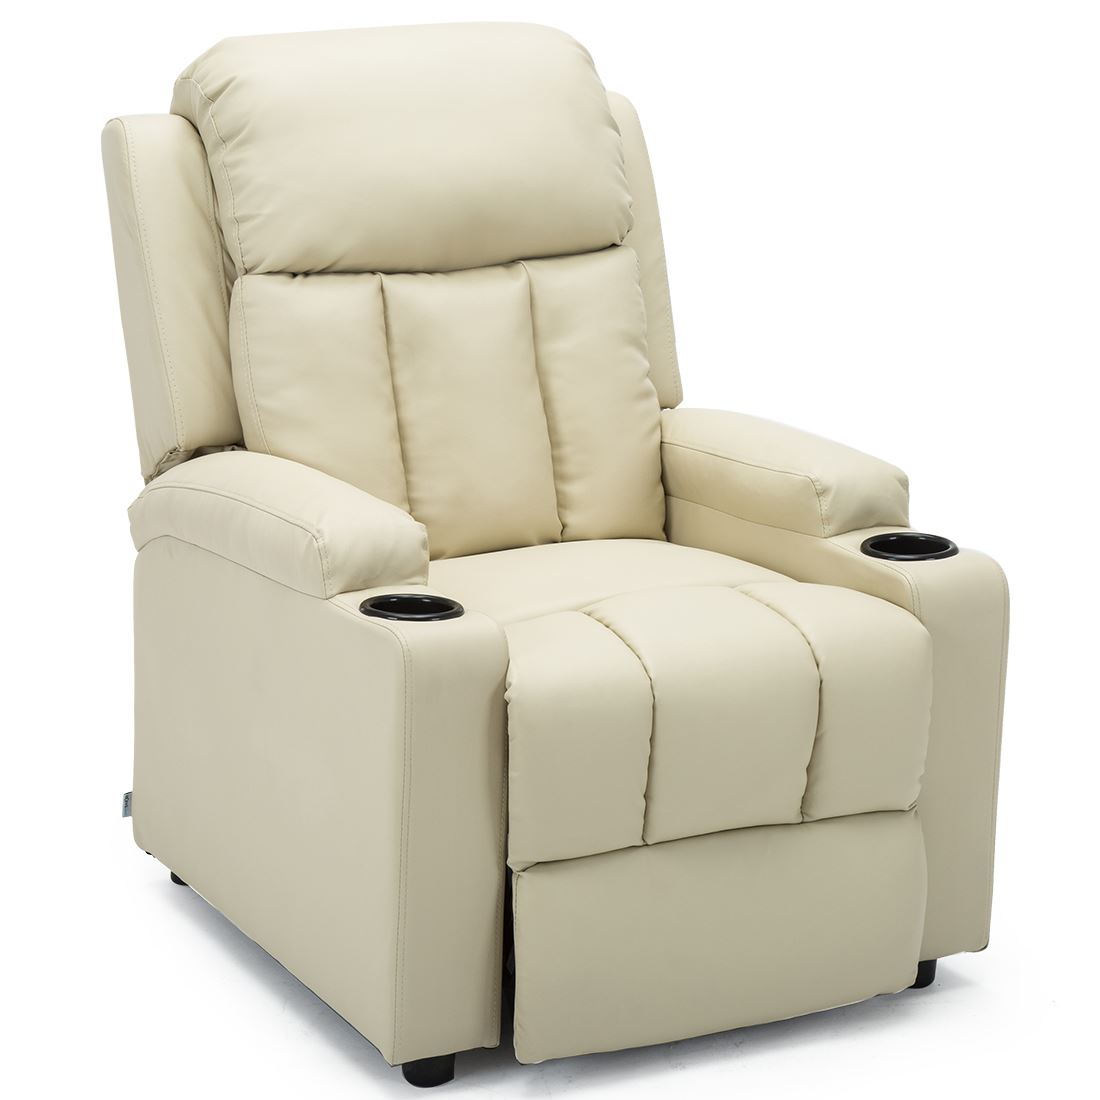 STUDIO-LEATHER-RECLINER-w-DRINK-HOLDERS-ARMCHAIR-SOFA-CHAIR-CINEMA-GAMING thumbnail 22